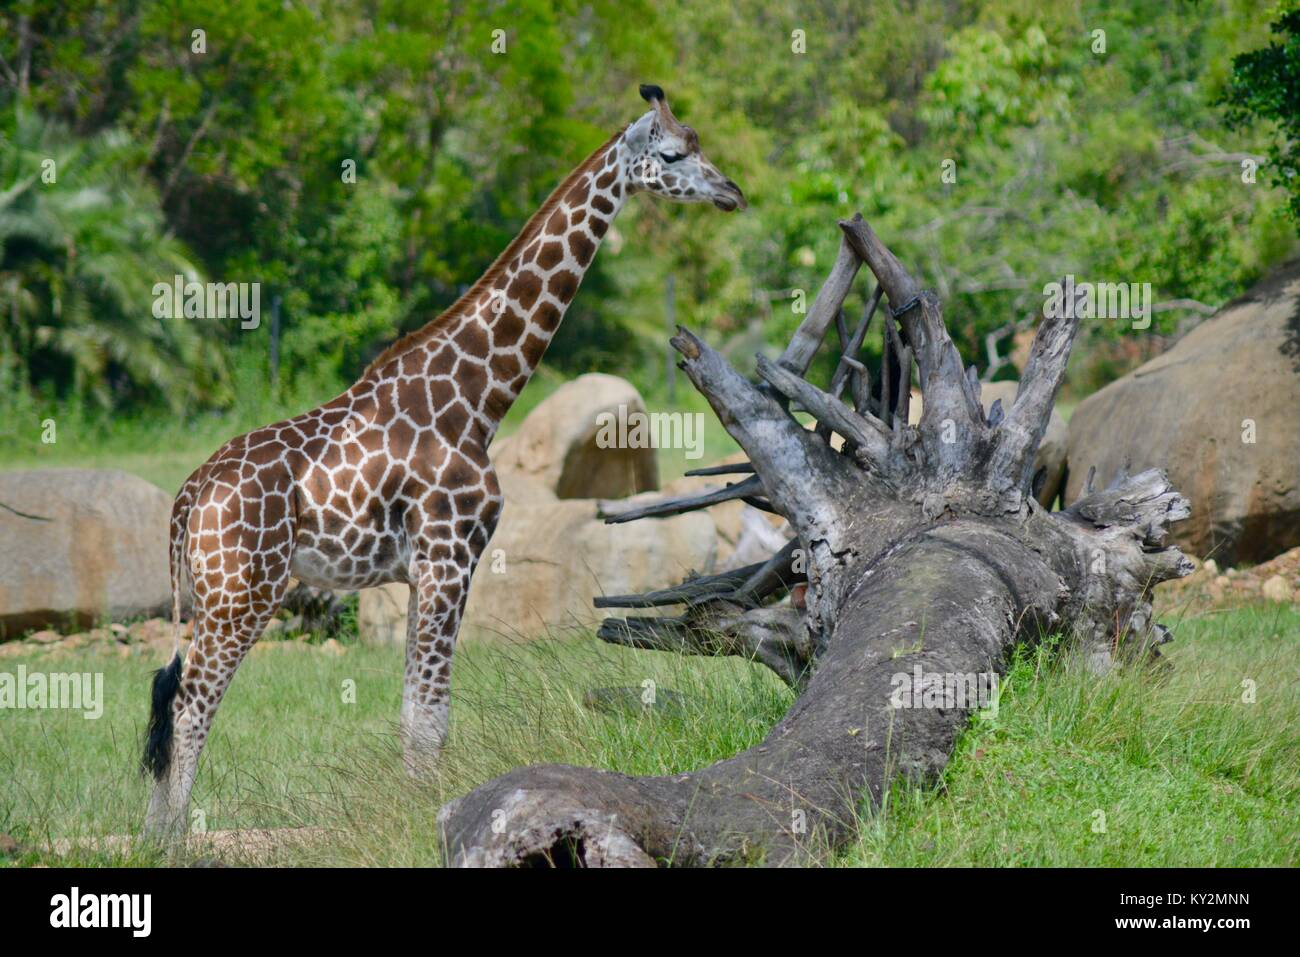 Giraffe, Giraffa camelopardalis, standing tall in the grass plains of Australia Zoo, Beerwah, Queensland, Australia - Stock Image